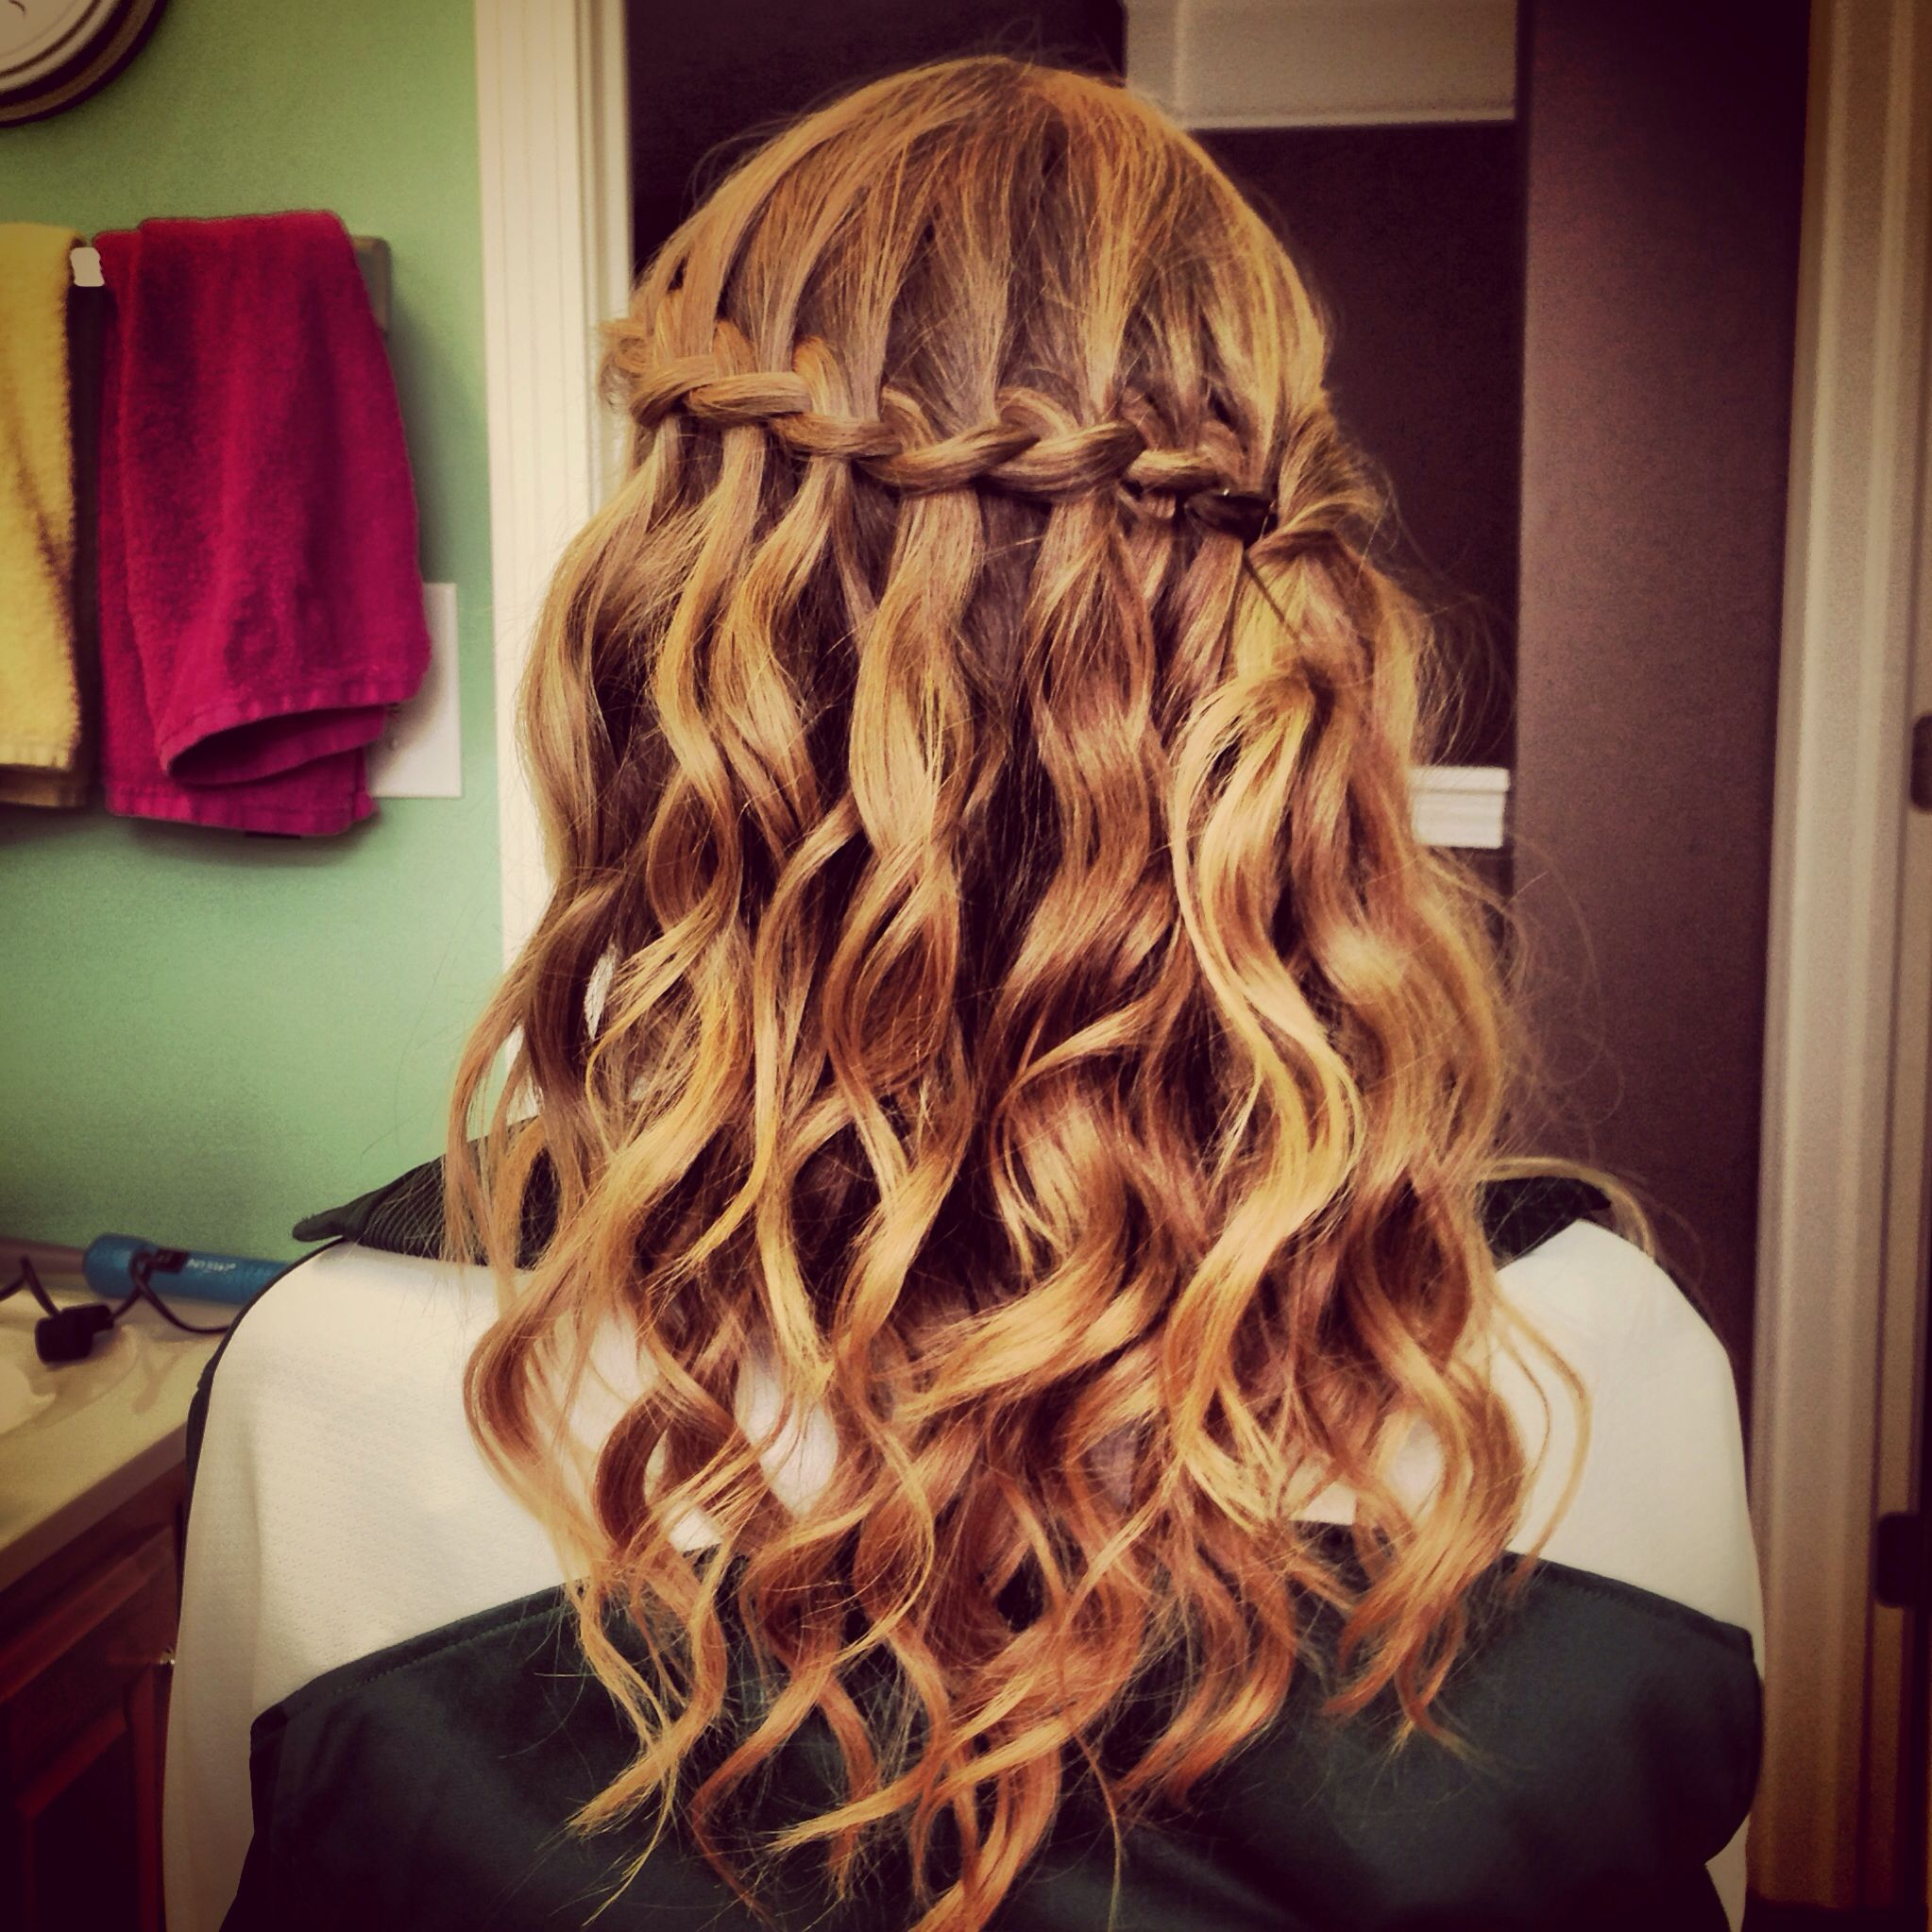 Hairstyle For Brothers Wedding: Trying To Decide On Bridesmaid Hair For My Brothers